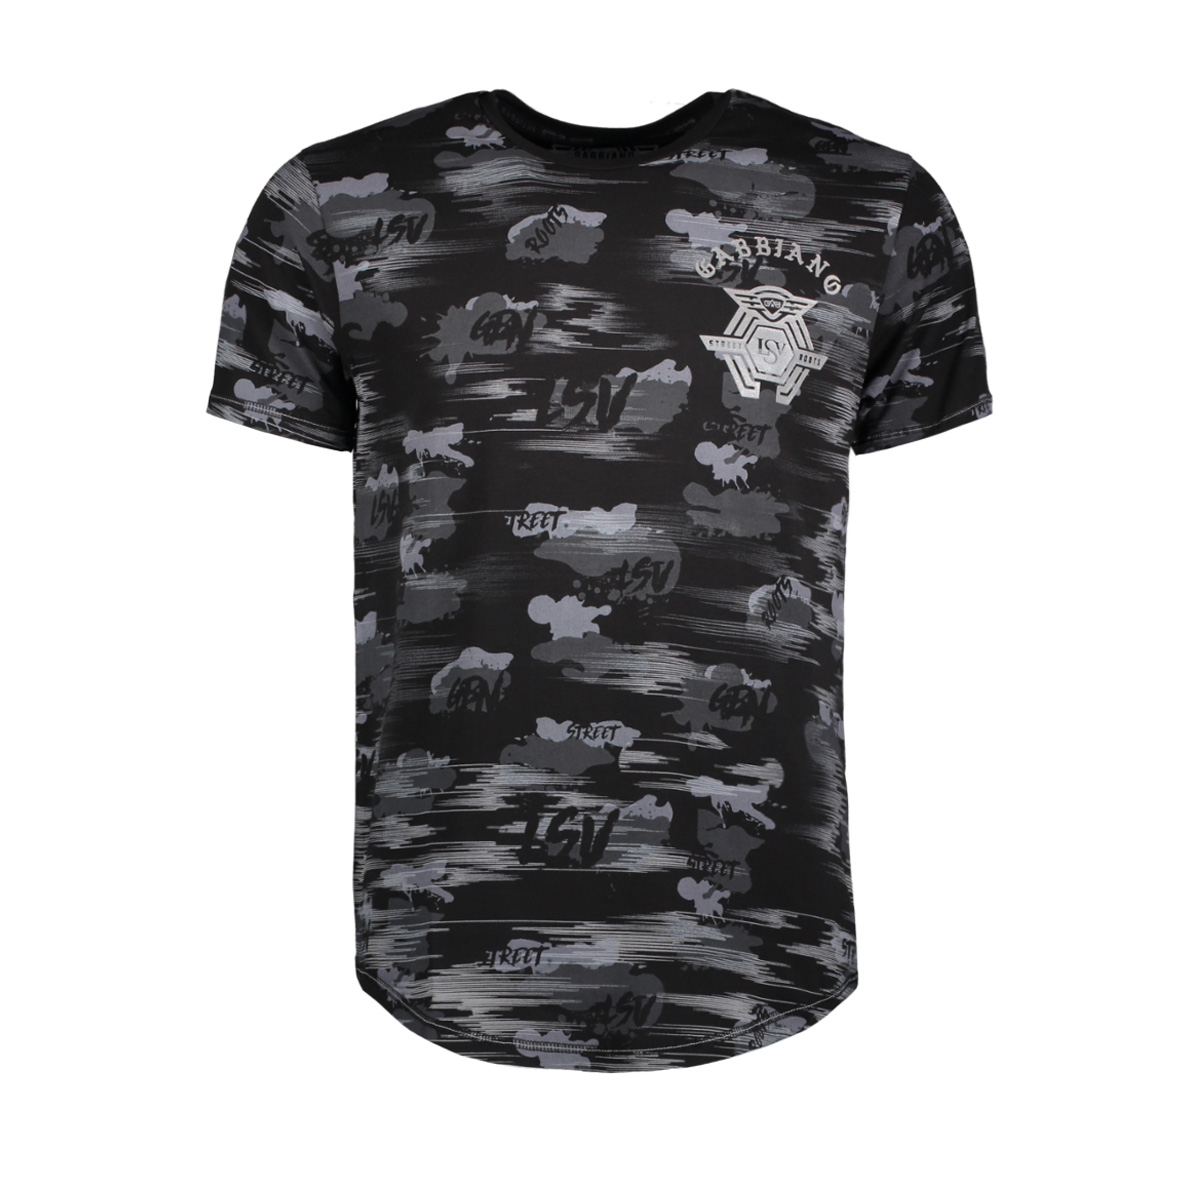 13862 gabbiano t-shirt black